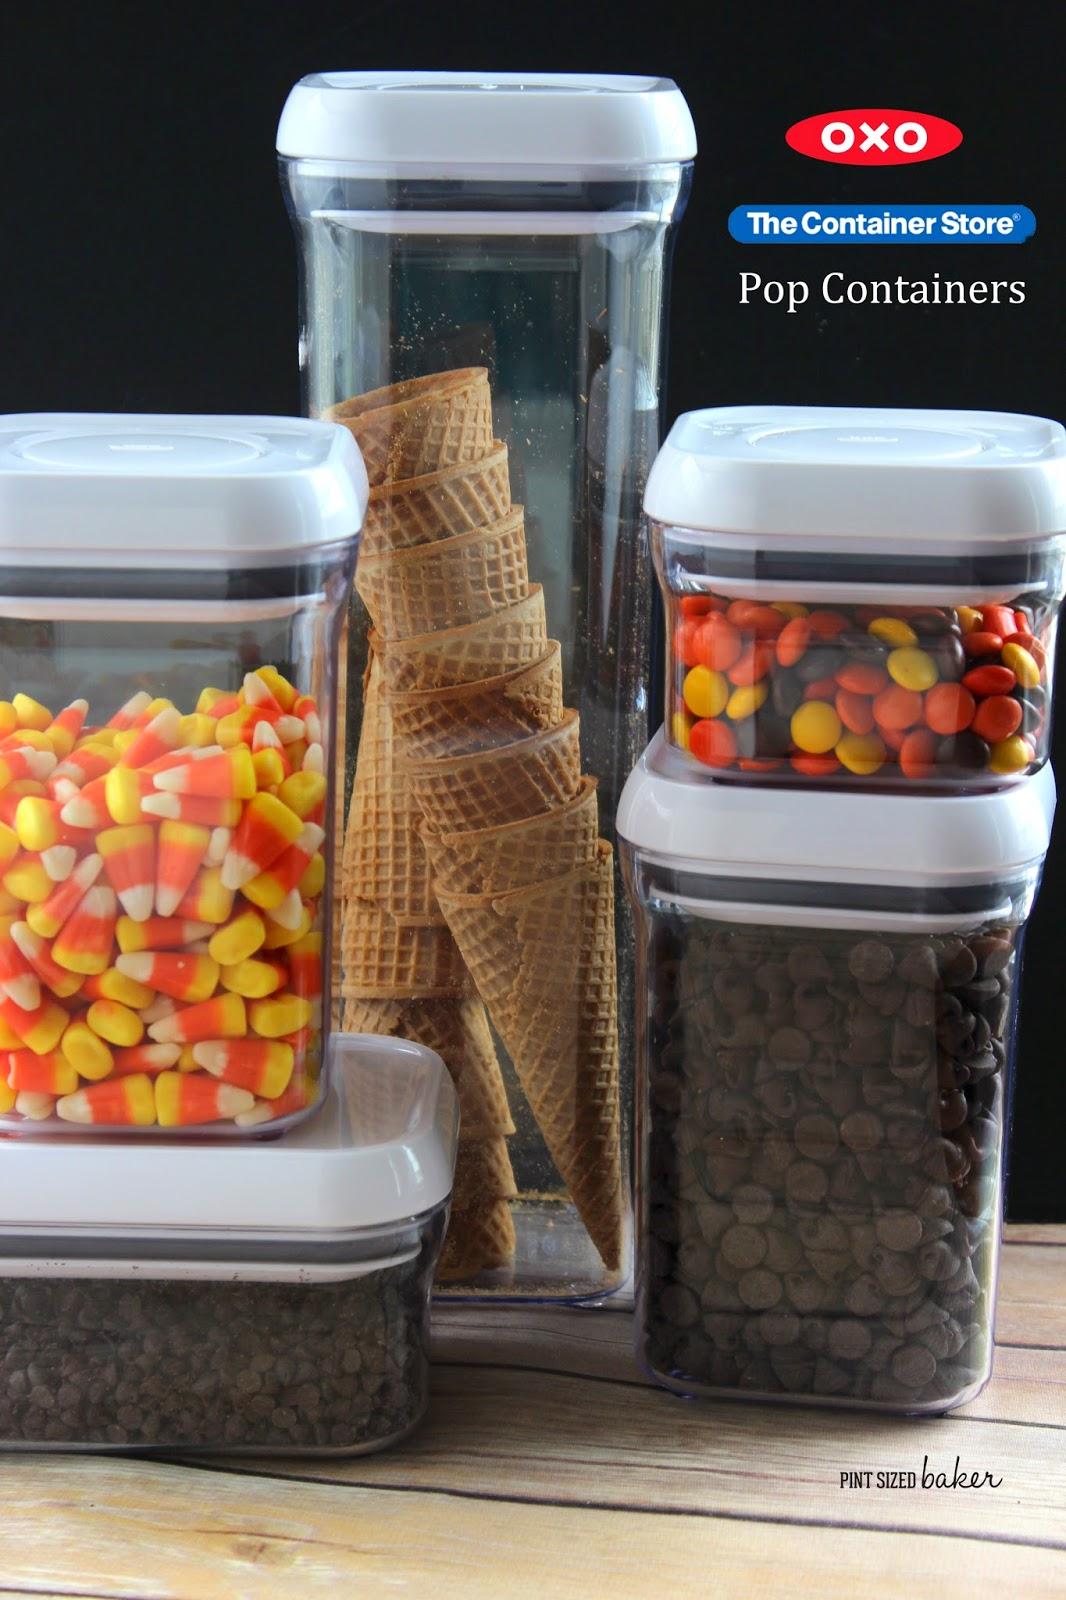 Get your Pop Top Containers from OXO at The Container Store.